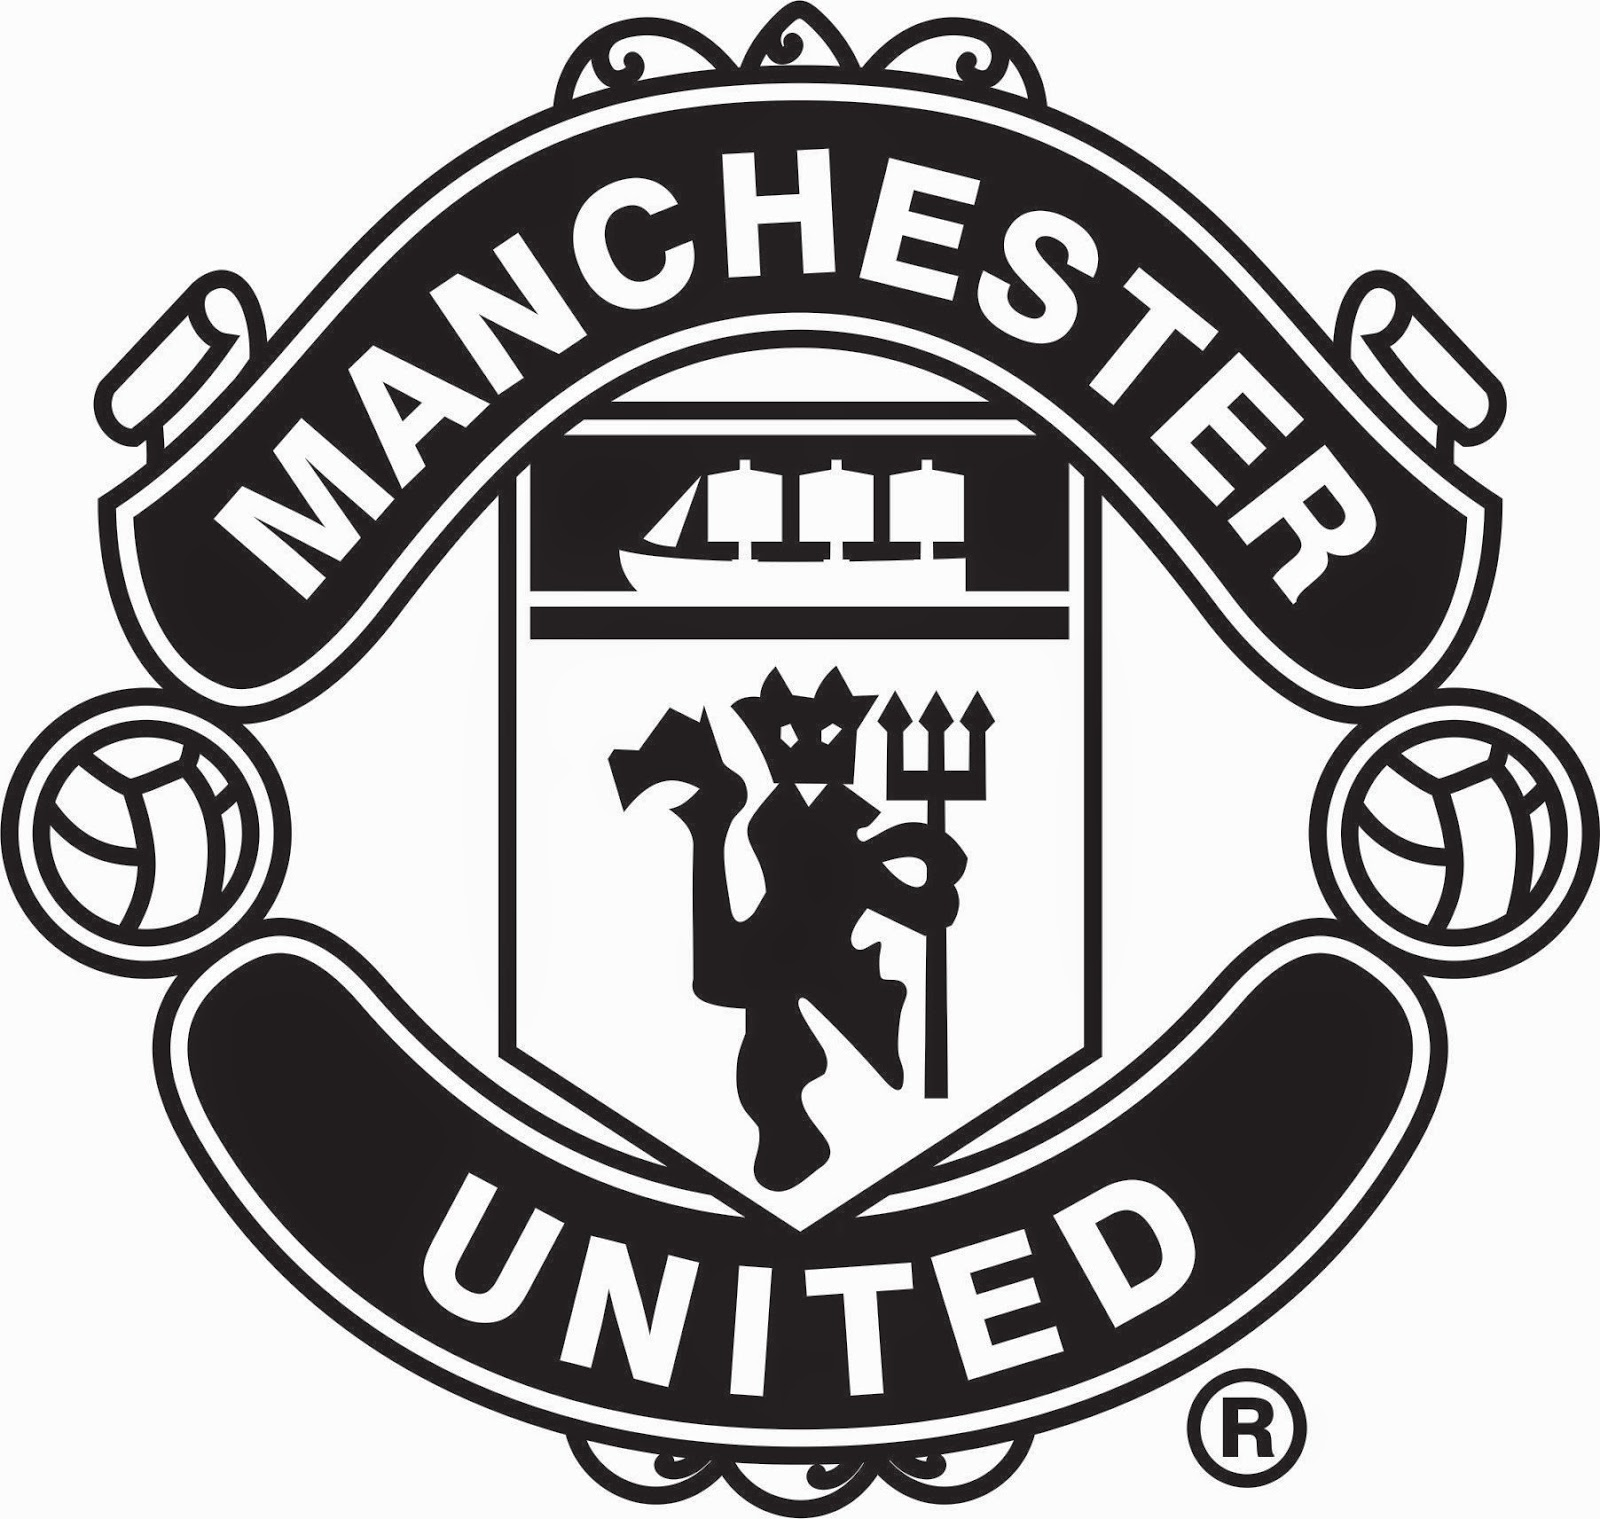 MANCHESTER UNITED LOGO VECTOR (AI,EPS,CDR) FREE DOWNLOAD ...